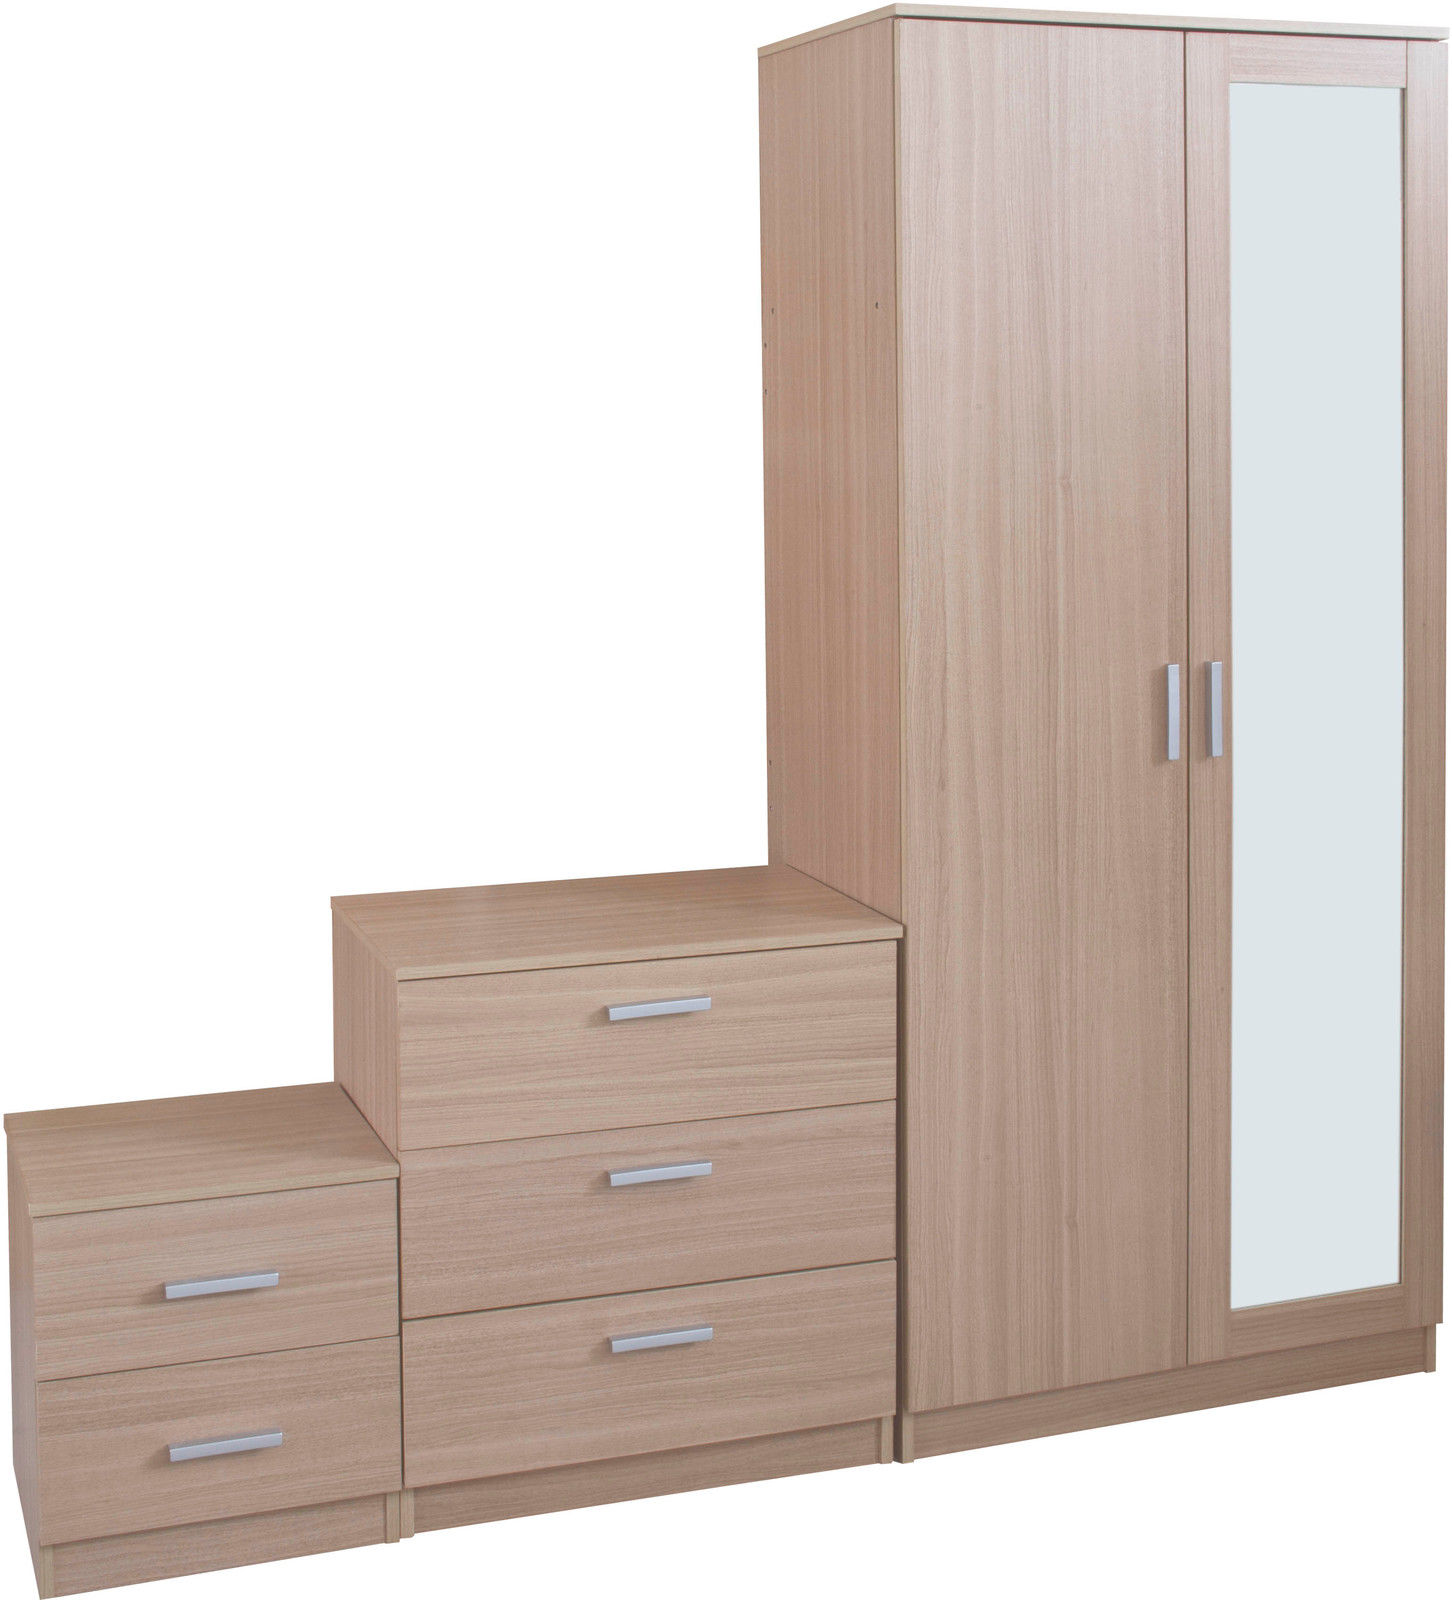 oak mirrored bedroom furniture photo - 6